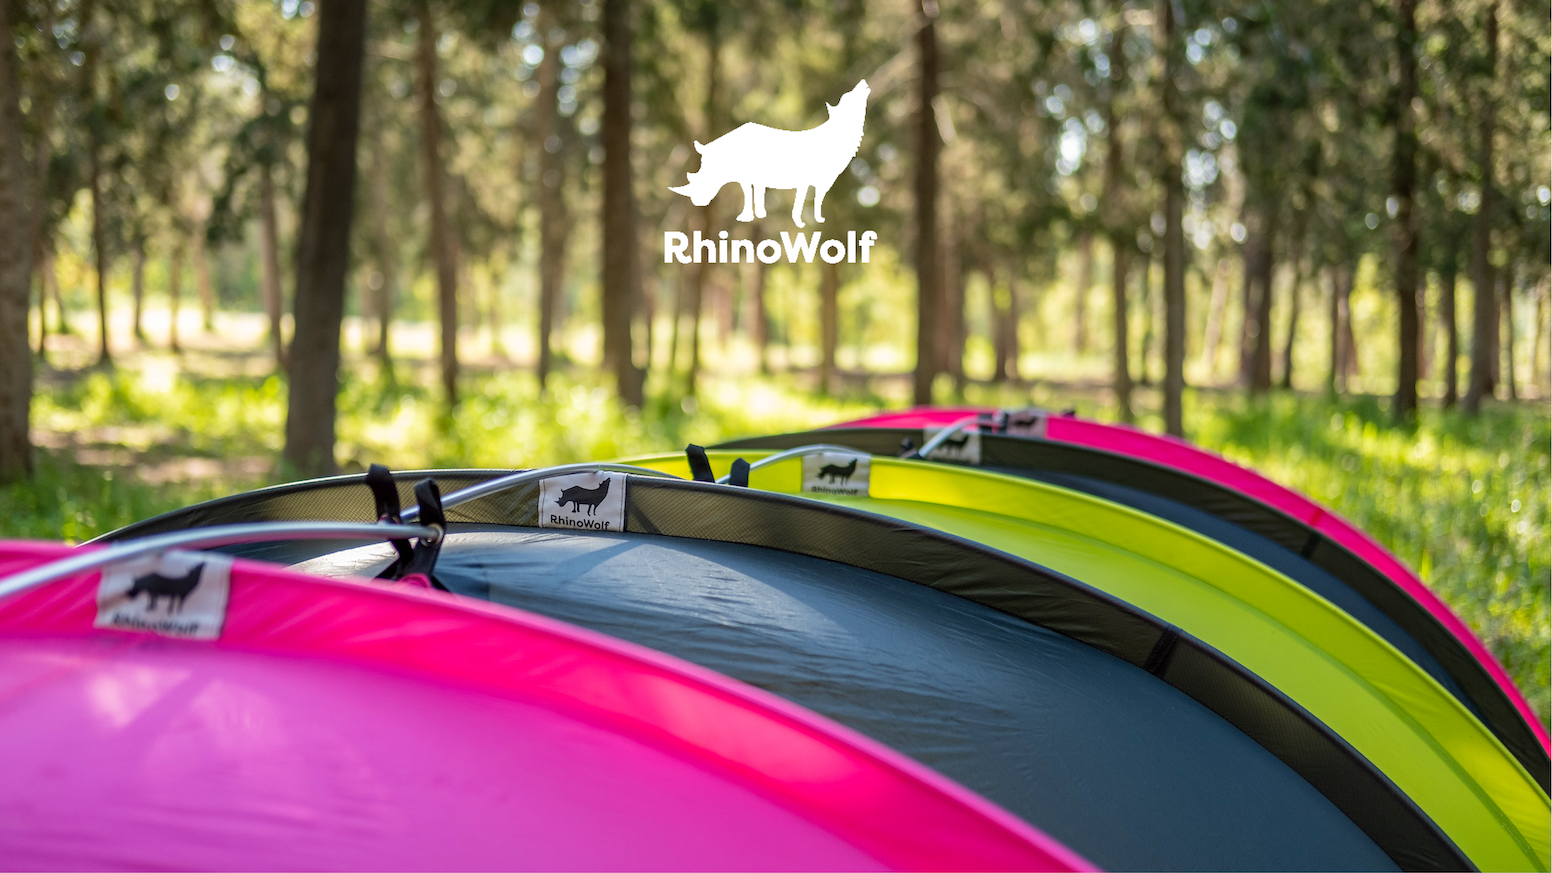 Forget tents. RhinoWolf has a built-in mattress and sleeping bag and connects to other RhinoWolfs.